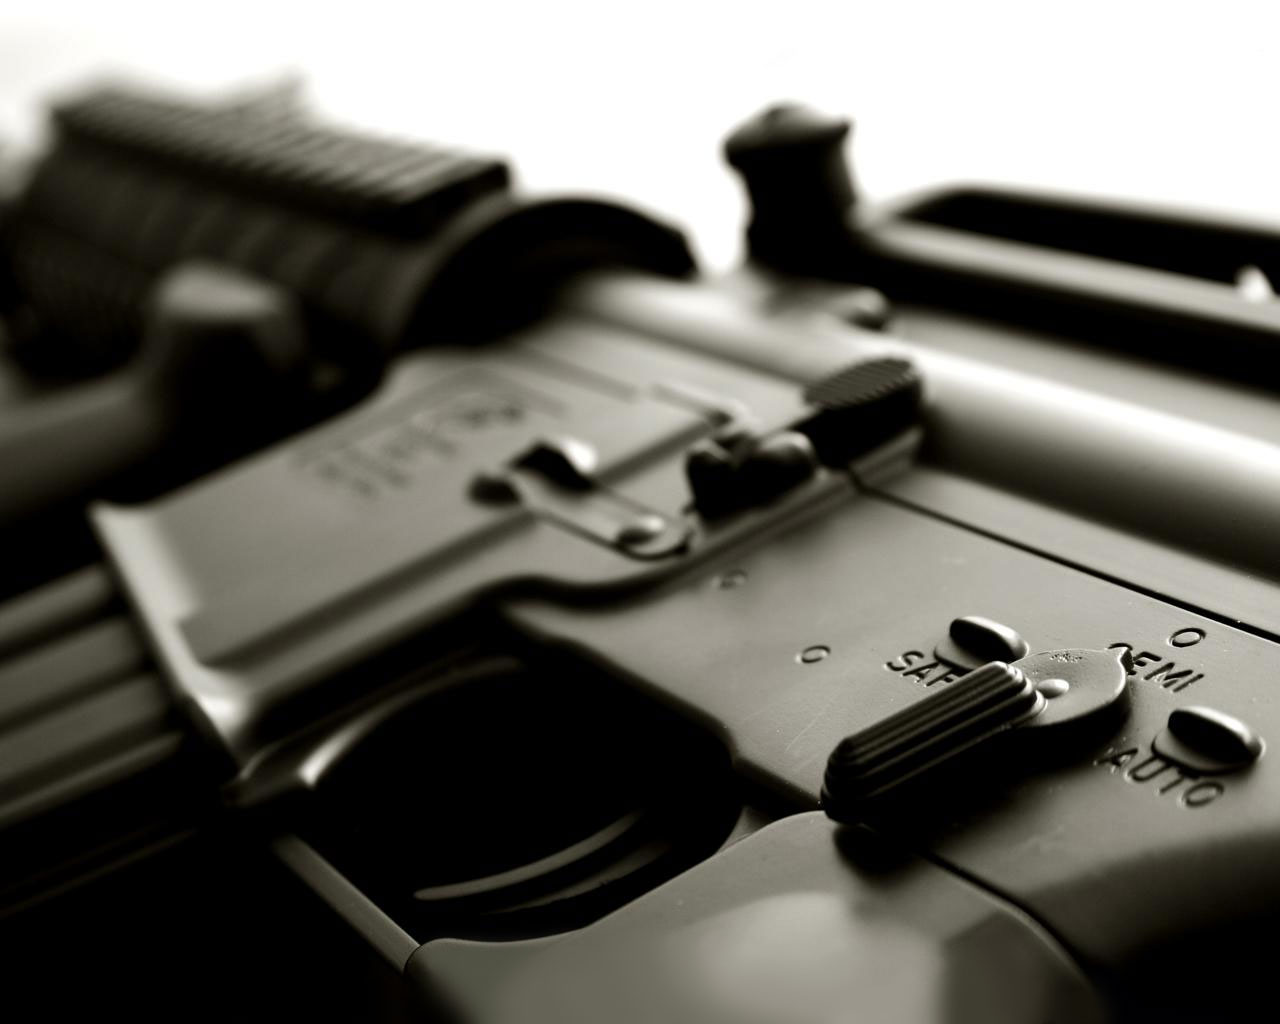 best wallpapers guns weapons wallpapers